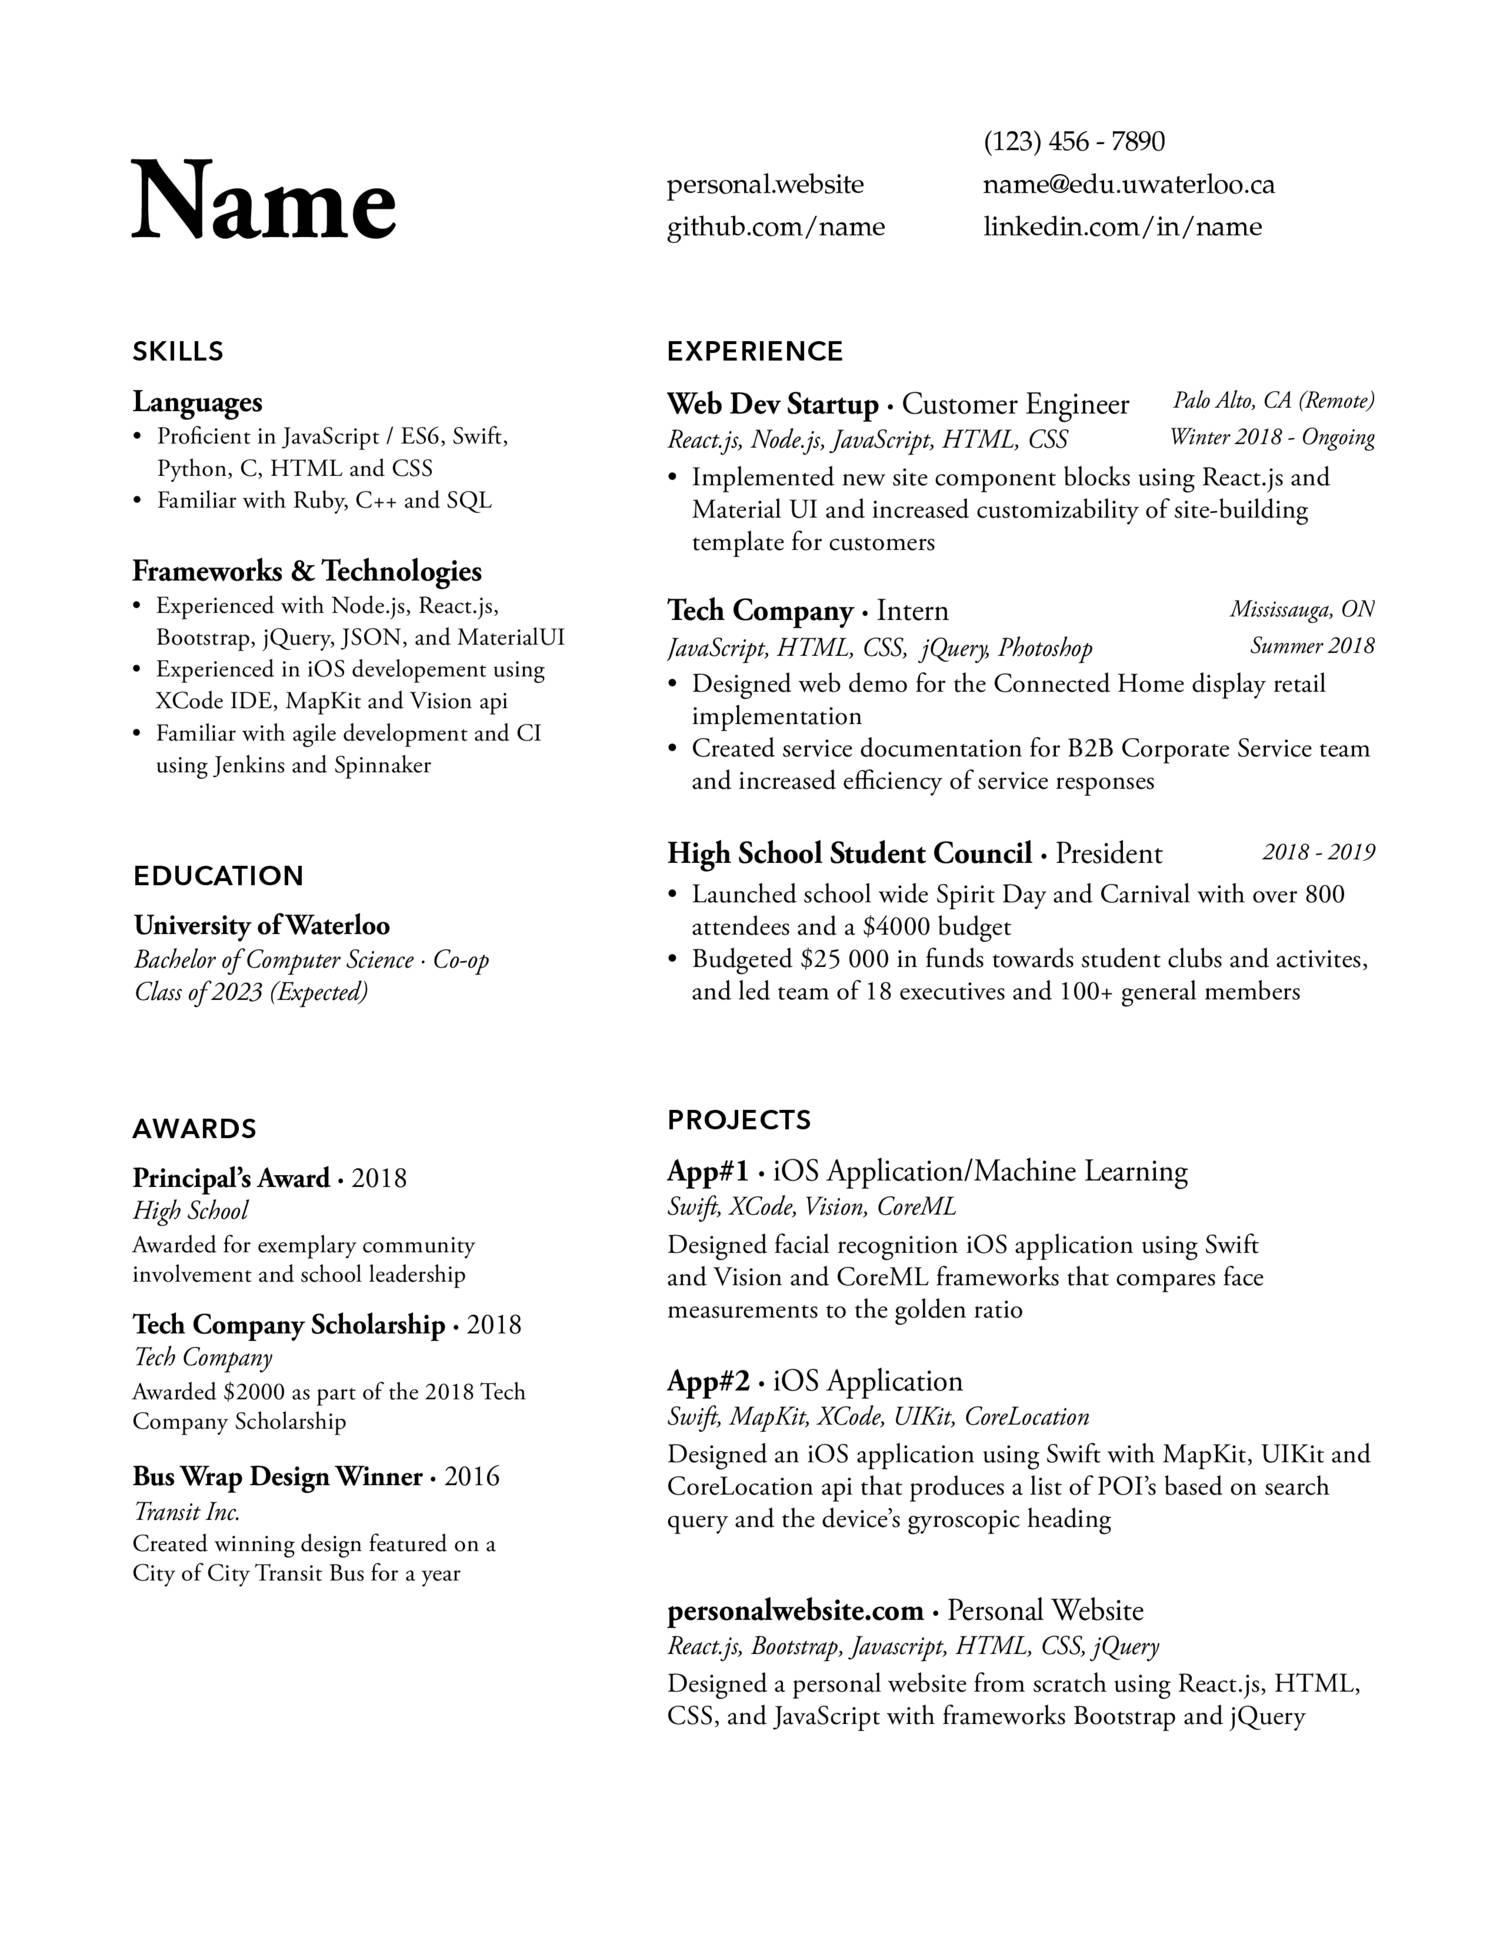 school reddit style apply with indeed resume assistant director of admissions best ats Resume Apply With Indeed Resume Reddit